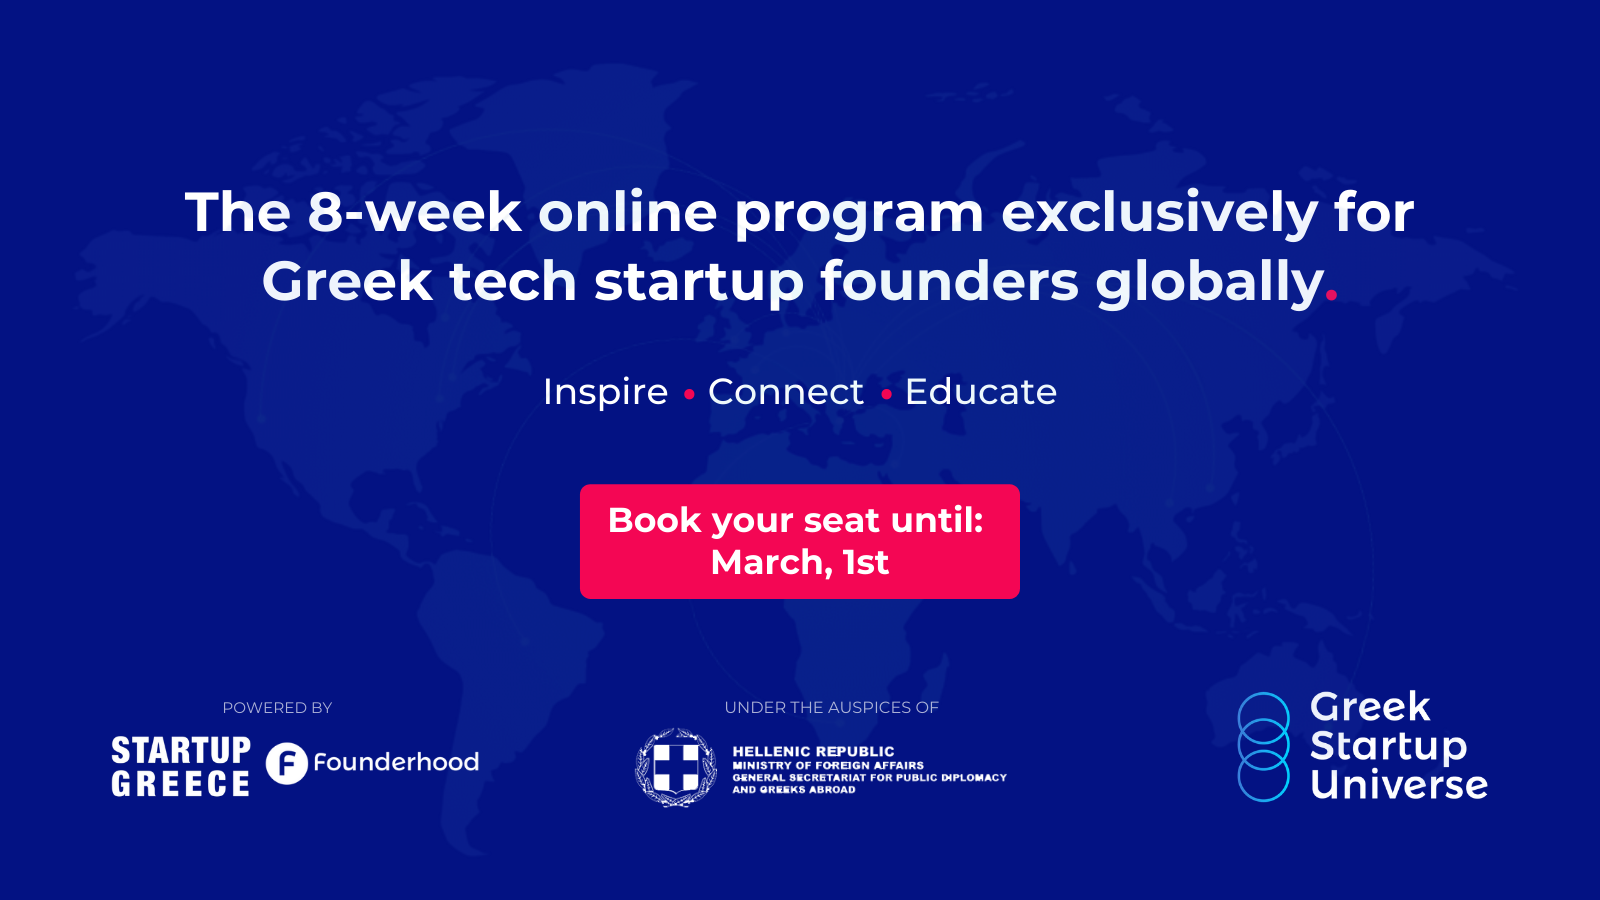 Greek Startup Universe: The 8-week online program exclusively for Greek tech startup founders globally by Startup Greece and Founderhood